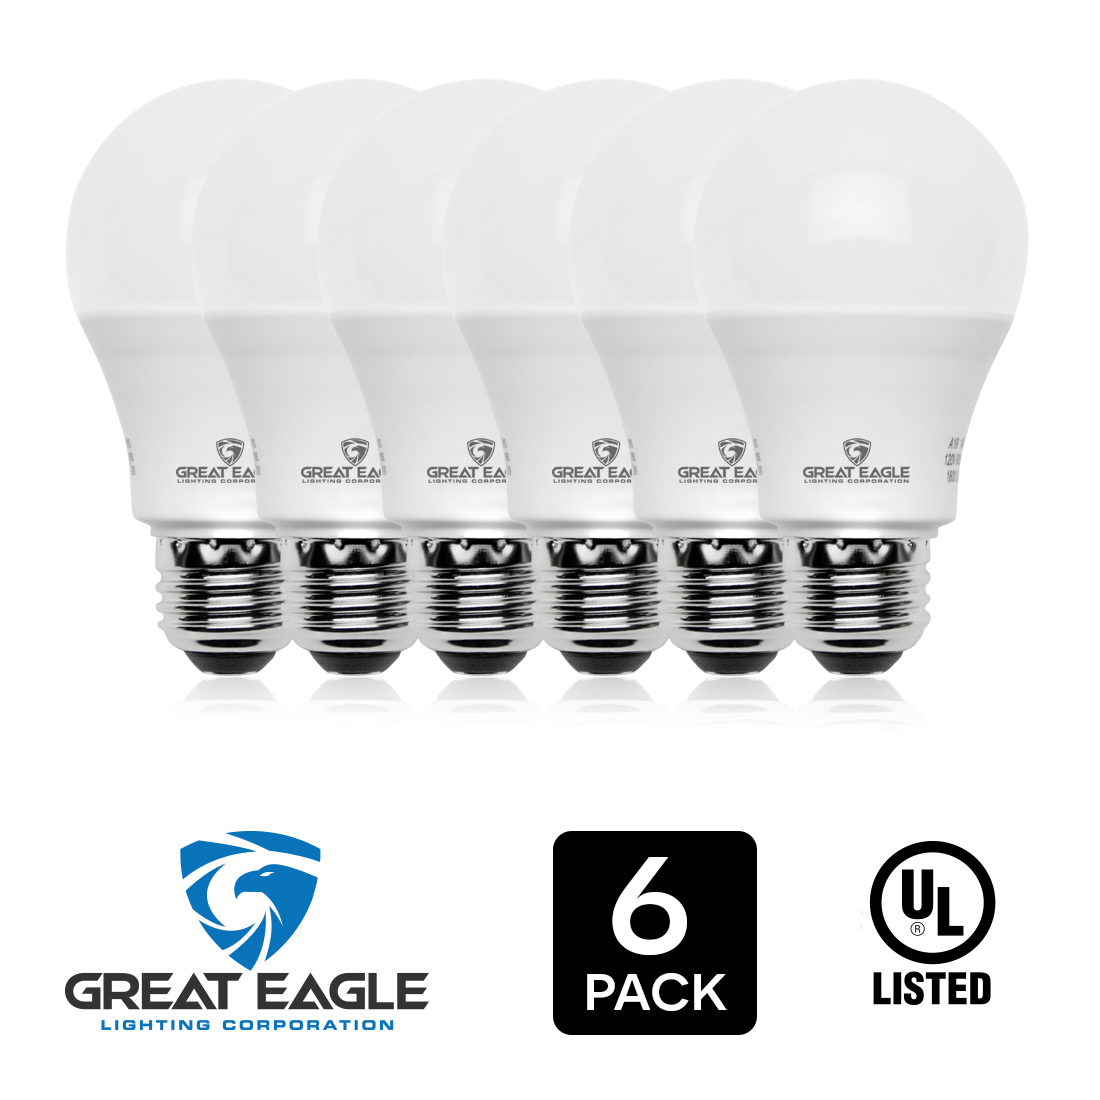 Great Eagle LED Dimmable Light Bulb, 14W (100W Equivalent), 3000K Bright White, 1550 Lumens, A19 shape, E26 base, UL Listed, LED bulbs for general use. 6-count